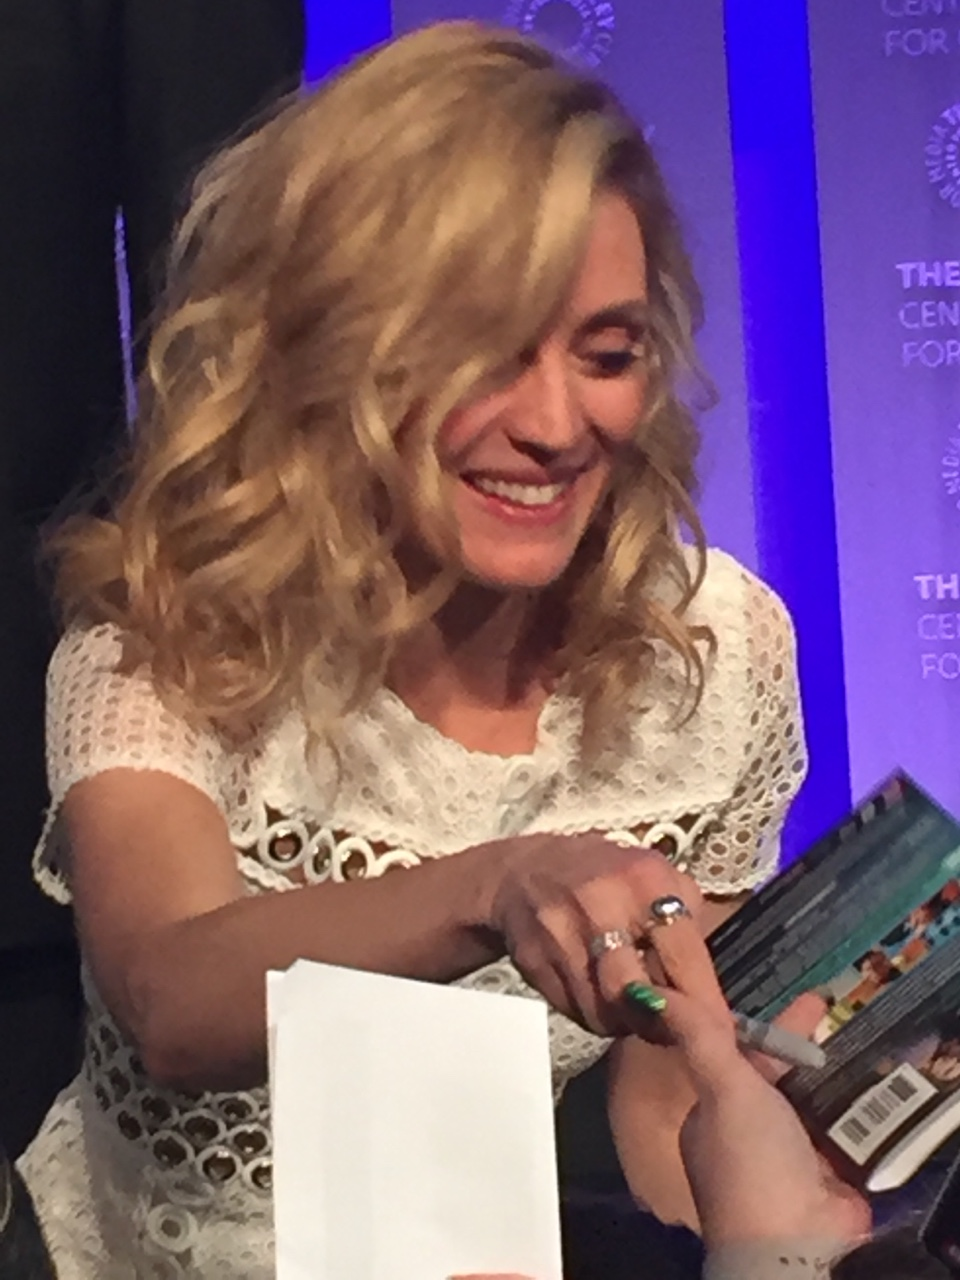 The 37-year old daughter of father (?) and mother(?) Evelyne Brochu in 2020 photo. Evelyne Brochu earned a  million dollar salary - leaving the net worth at 3 million in 2020